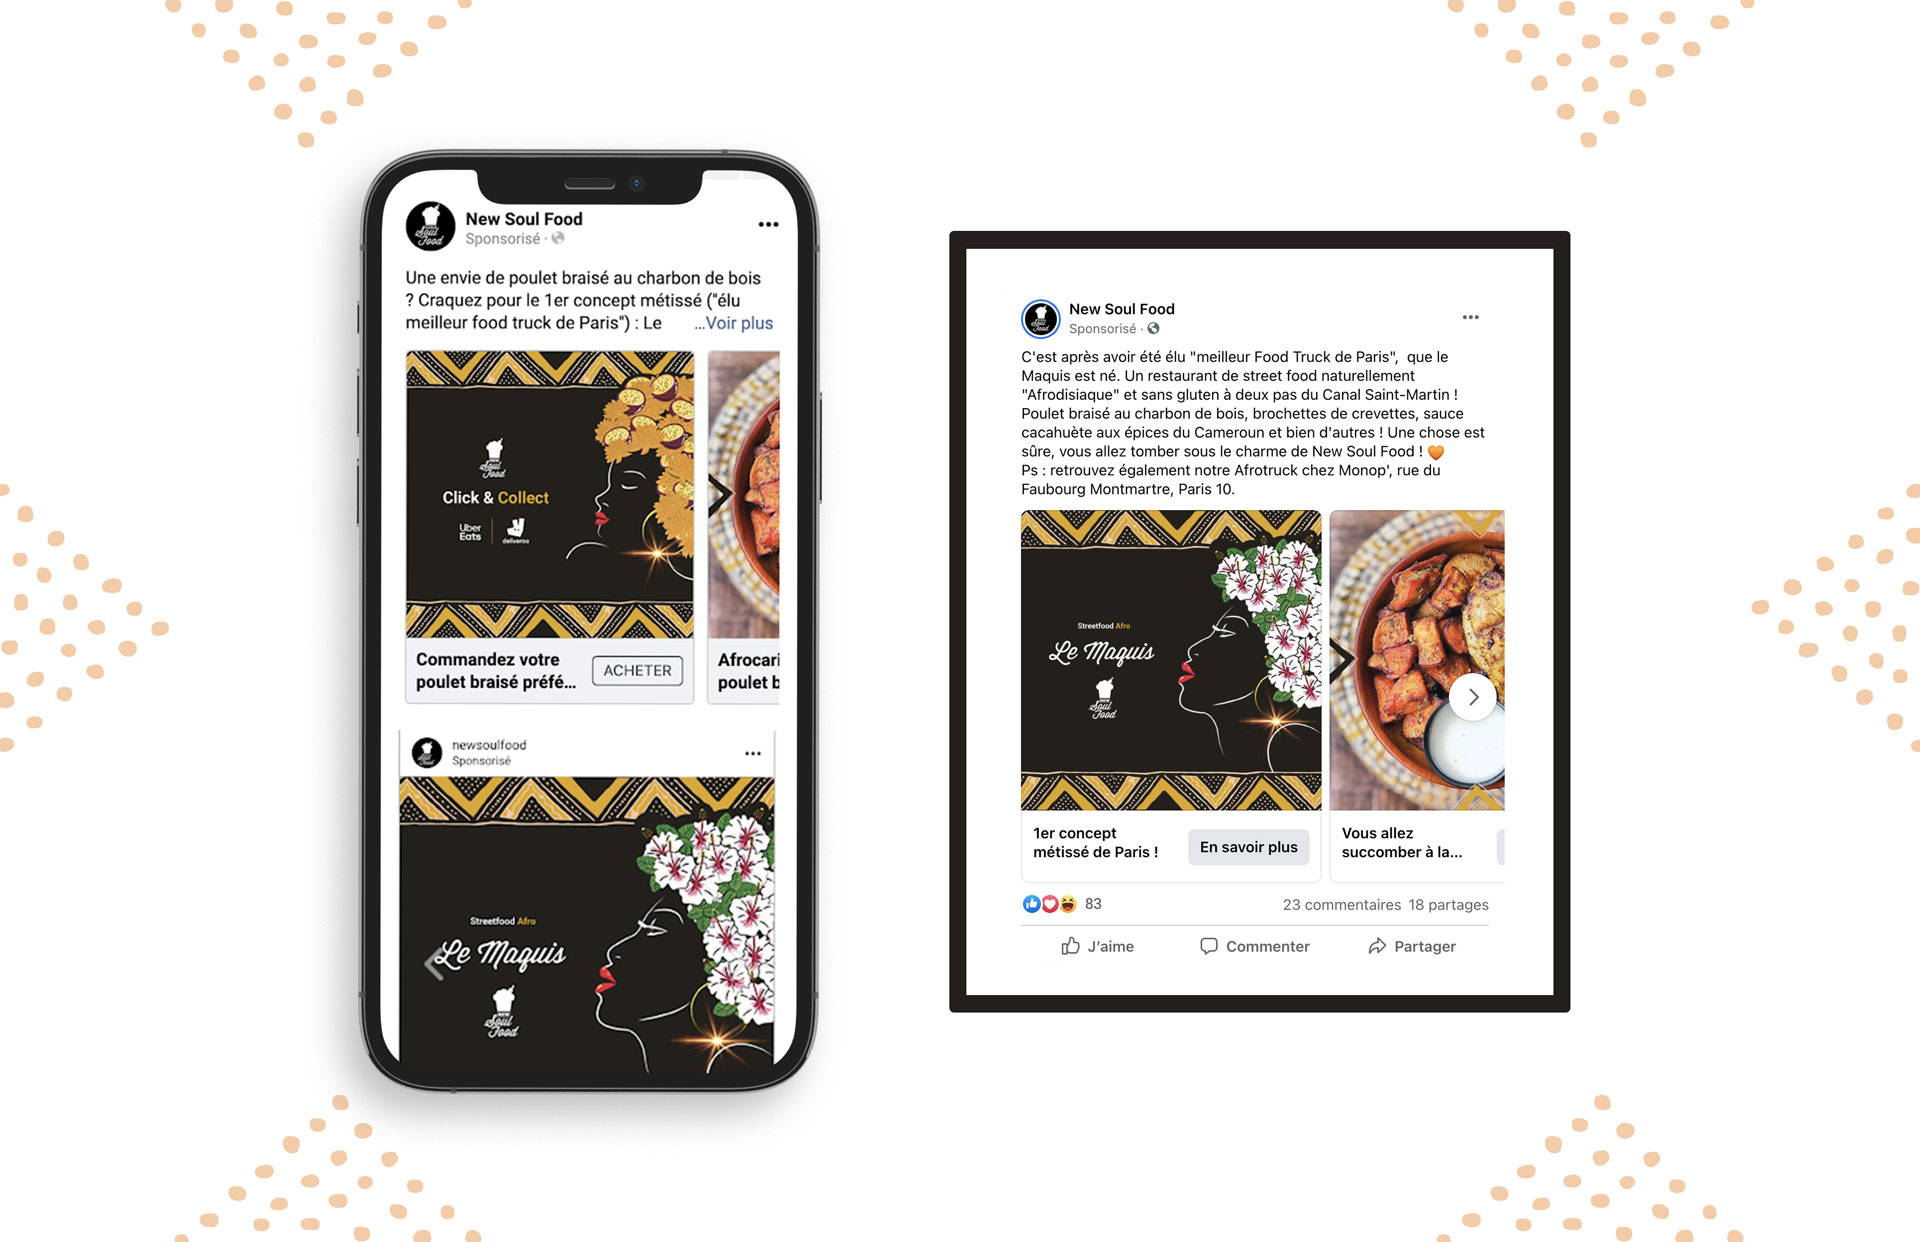 campagnes publicitaires facebook et instagram, notorieté et click & collect new soul food